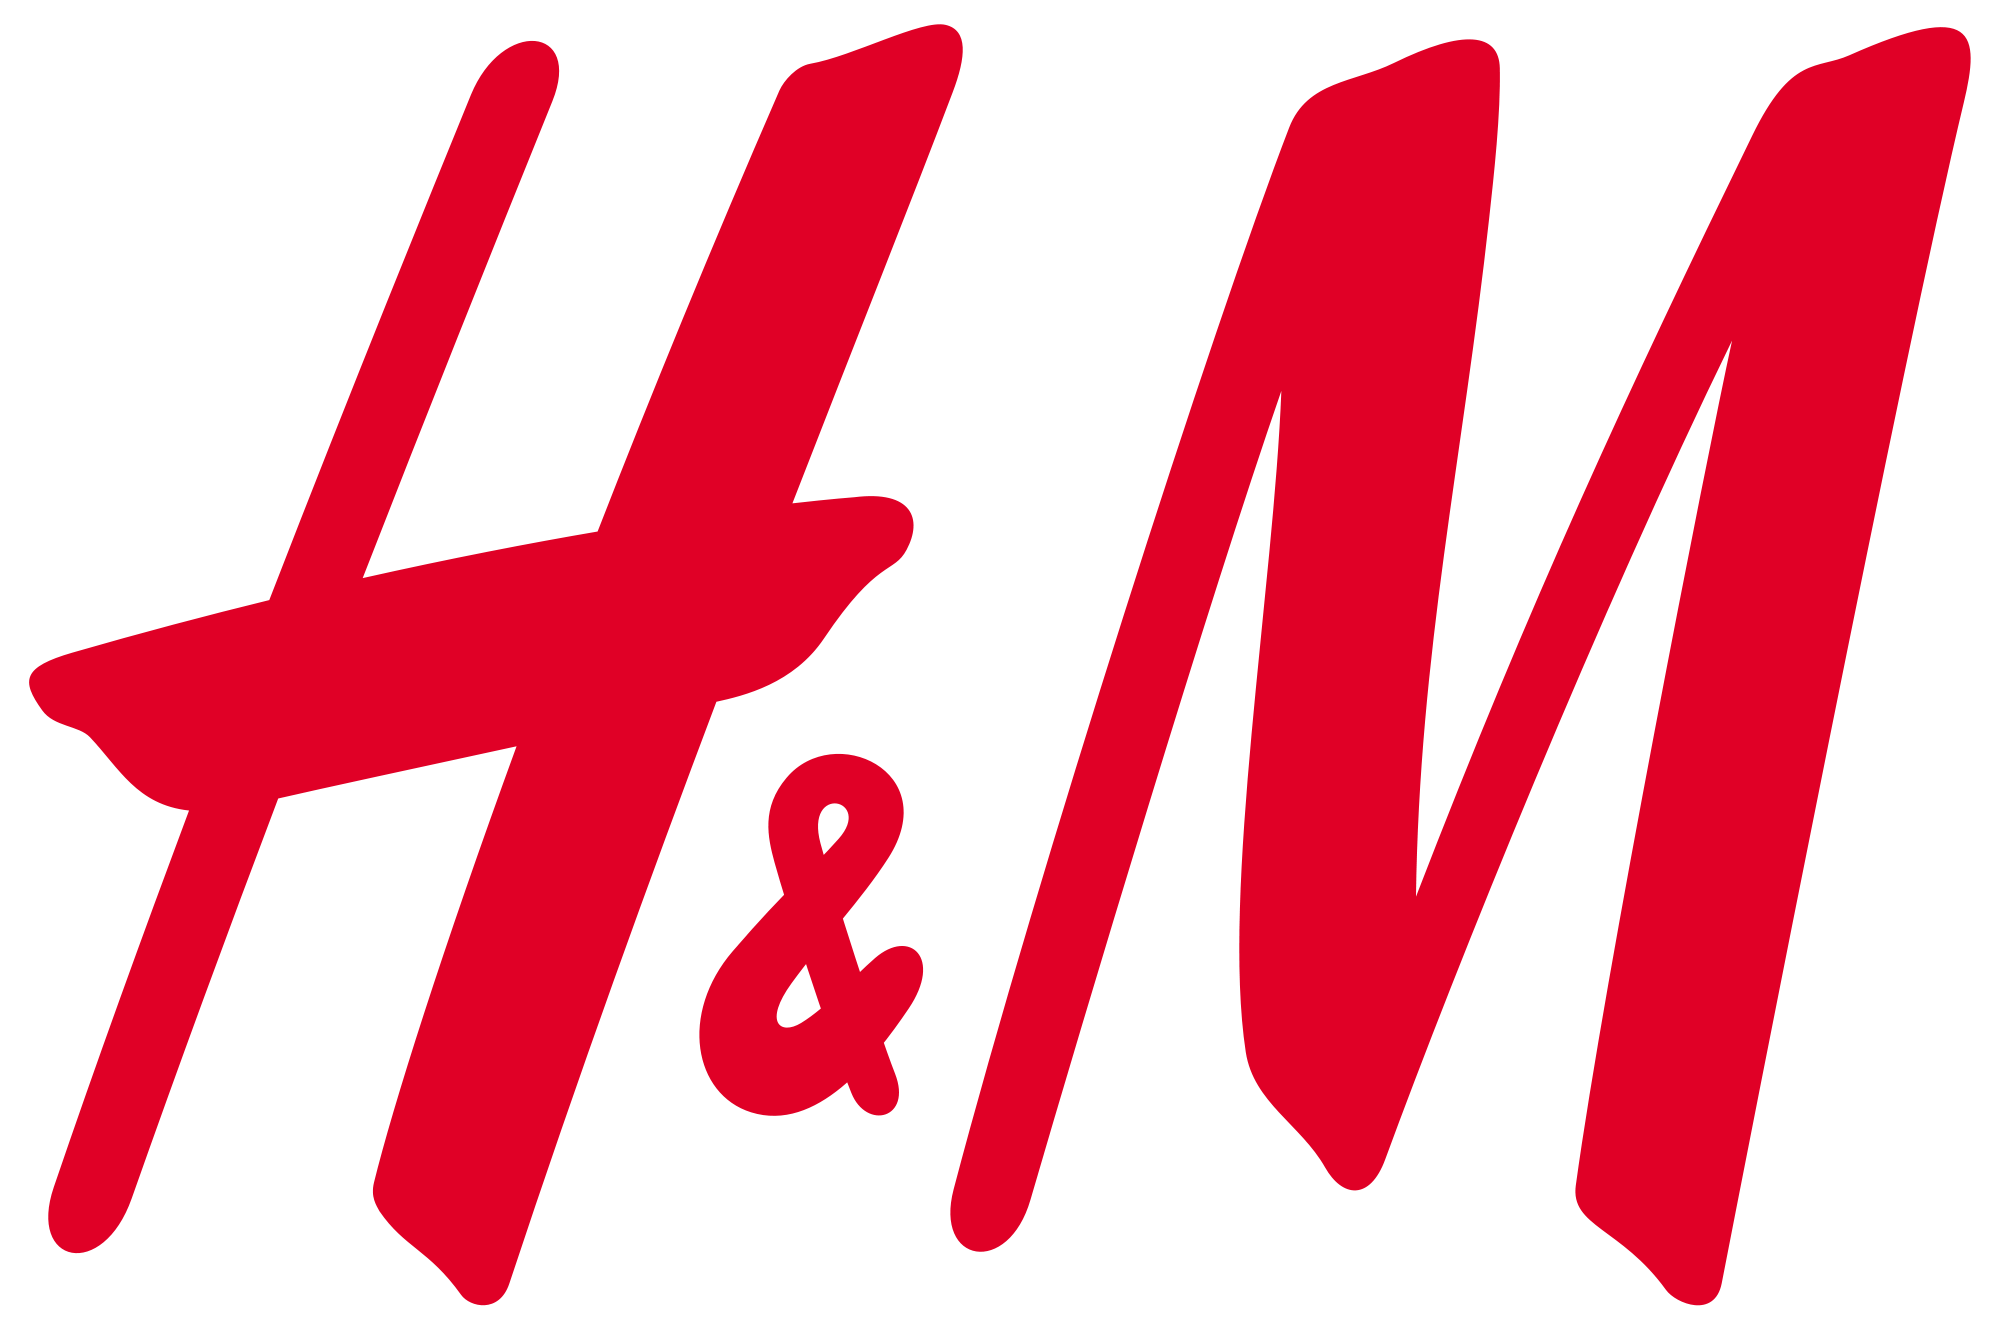 25% Off One Item For H&M Members